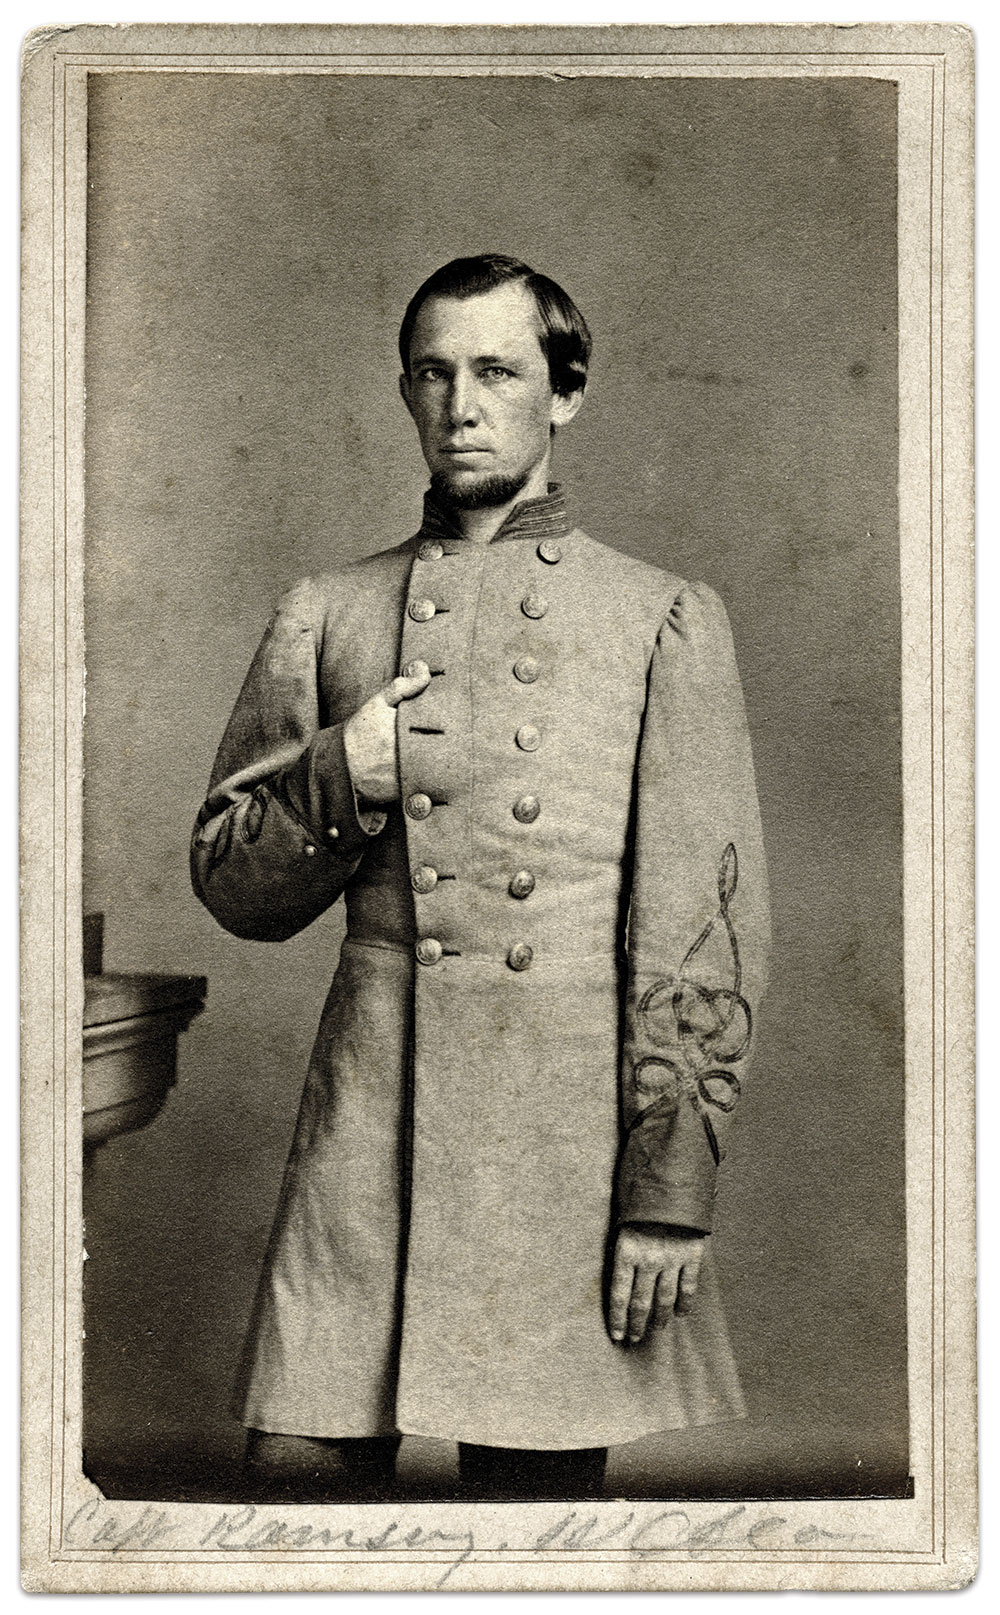 Capt. David Wardlaw Ramsey poses Napoleon-style after a prisoner of war stint in New Orleans. Carte de visite by Samuel Anderson & Samuel (or Solomon) T. Blessing of New Orleans, Louisiana. David W. Vaughan Collection.